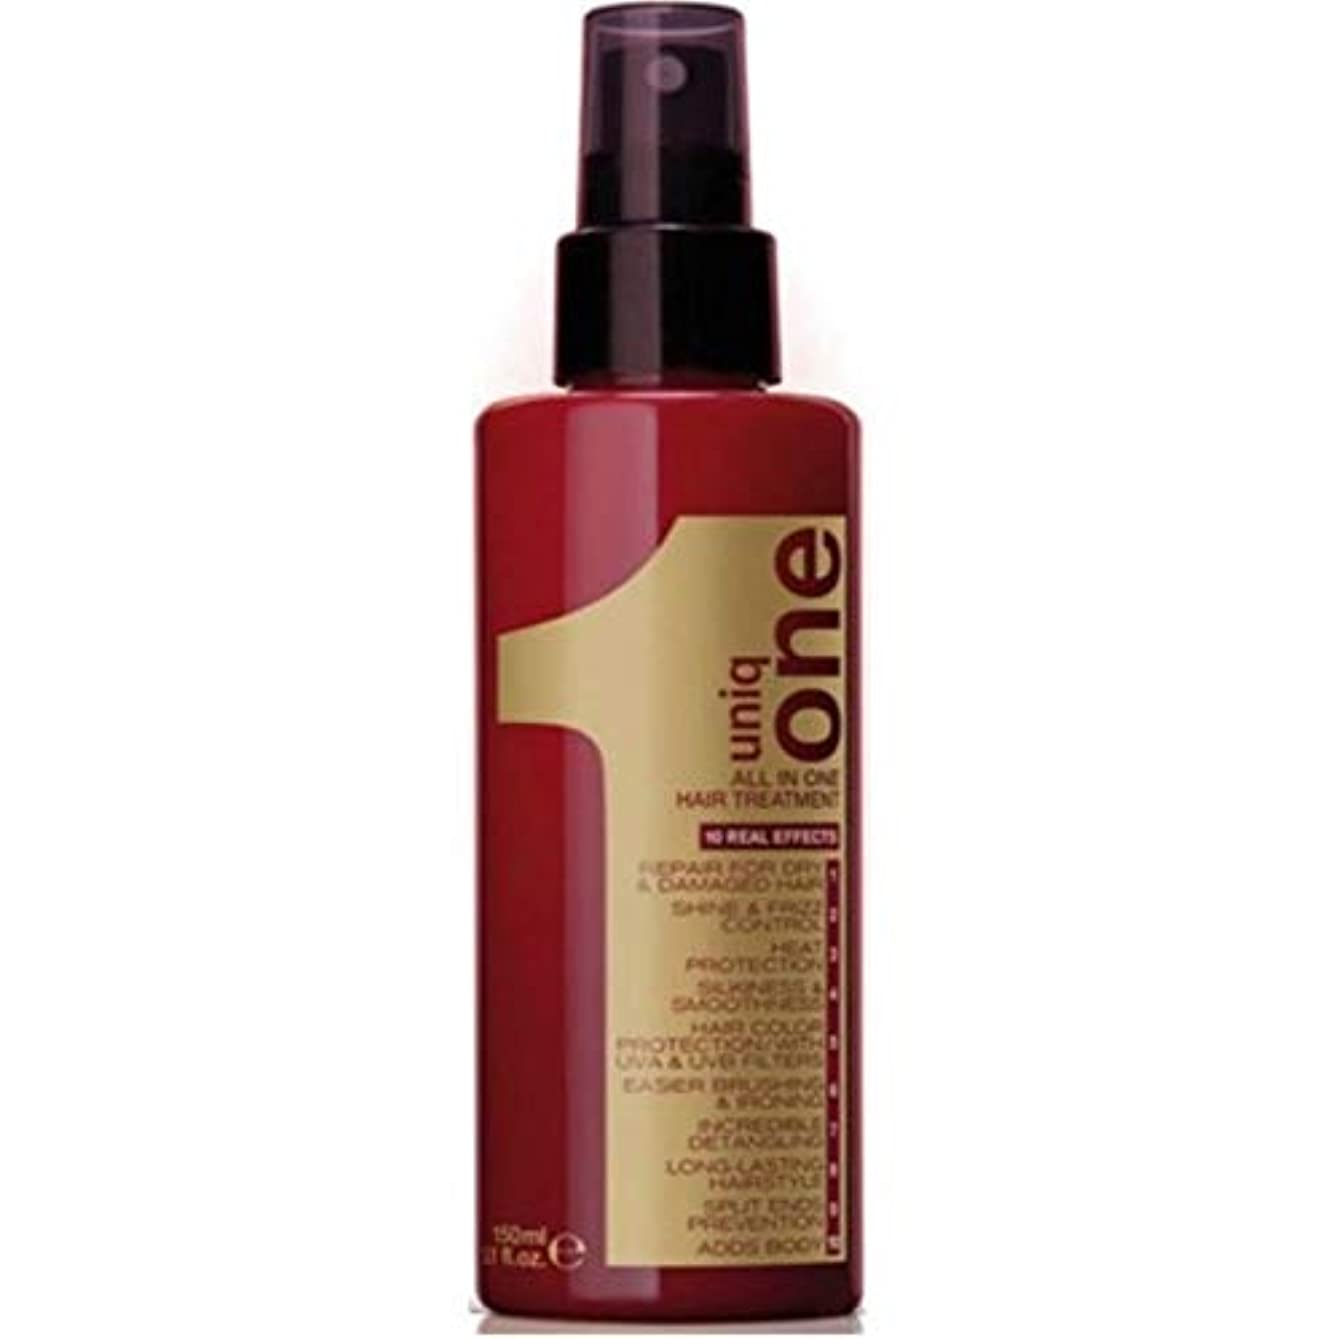 鋼しかし湖Uniq One Revlon All In One Hair Treatment 5.1Oz. - New Original by Uniq One by Uniq One